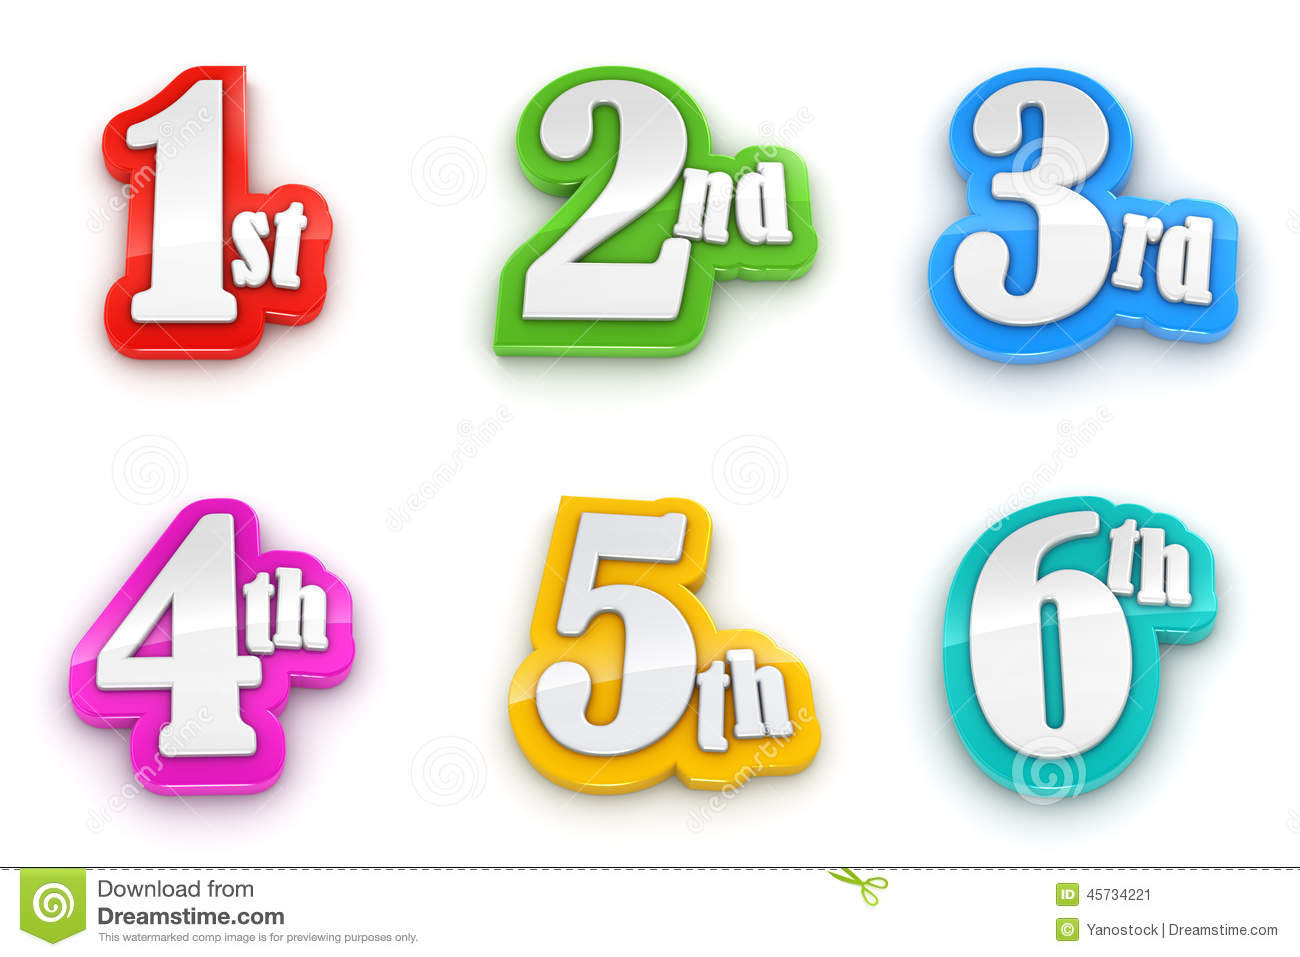 1st 2nd 3rd 4th 5th 6th numbers on white background illustration